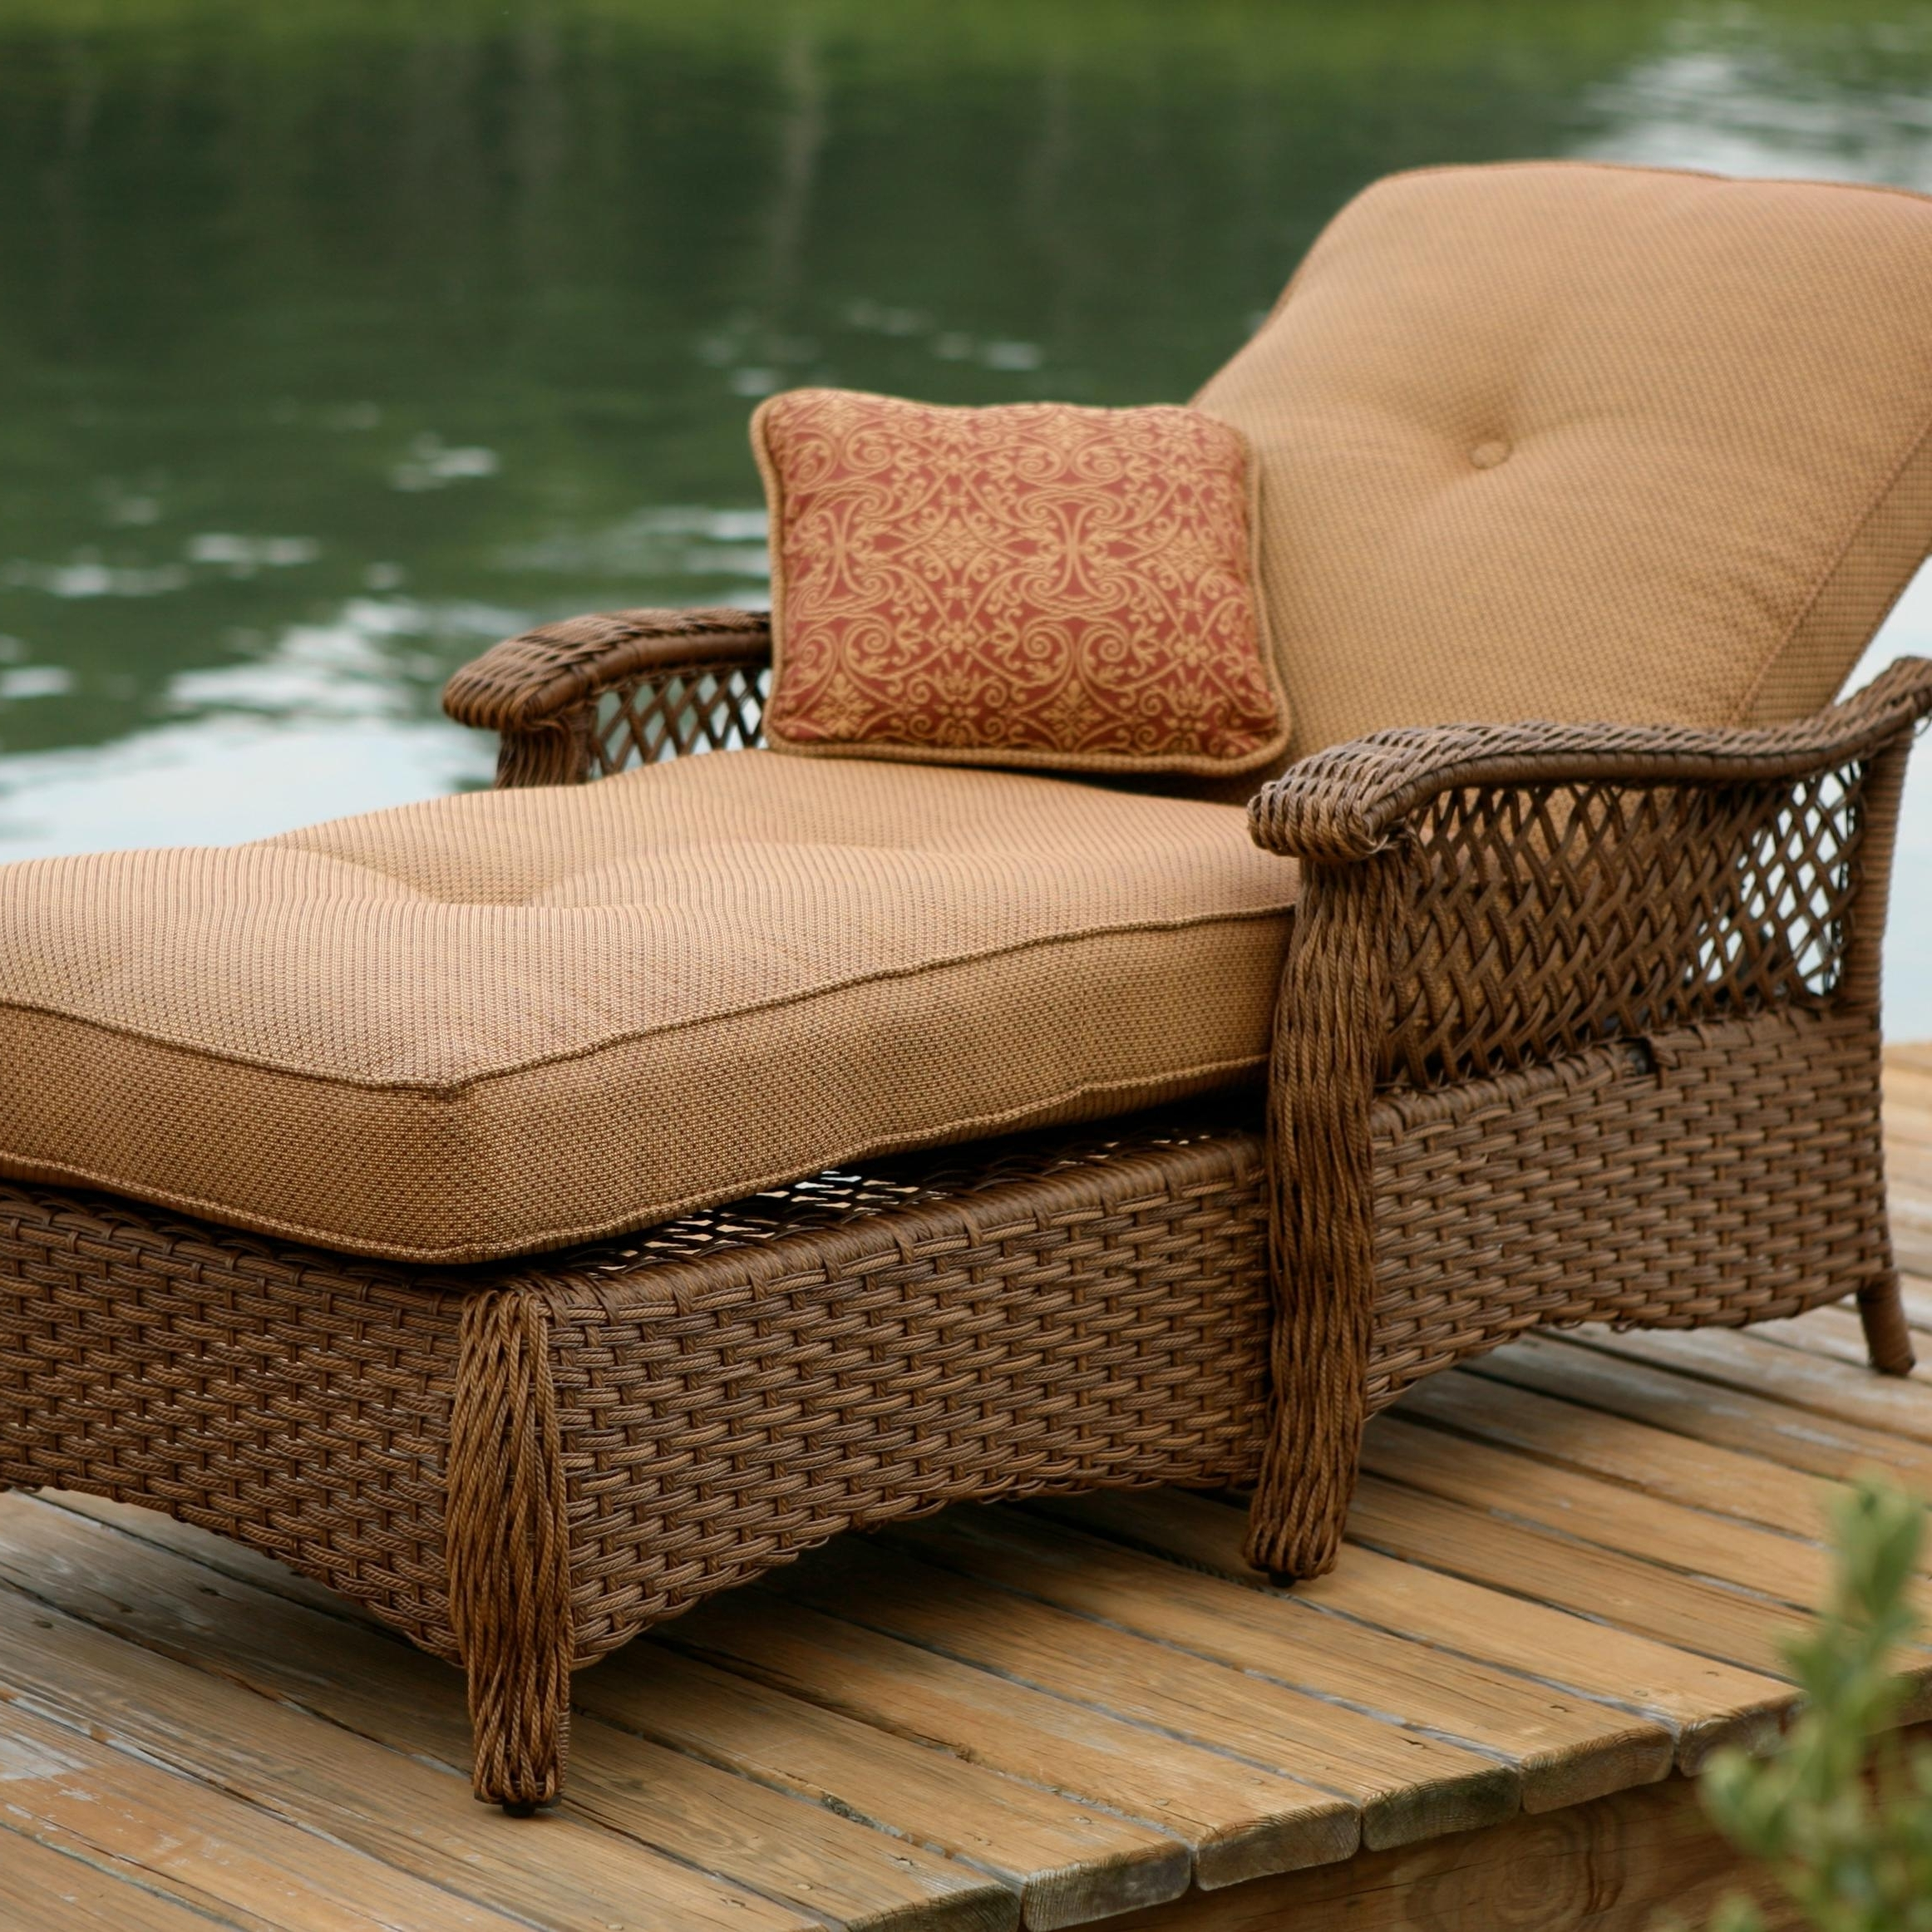 Chaise Lounge Chairs Made In Usa Regarding Famous Chaise Lounge Patio Chair Veranda Agio Outdoor Woven (View 5 of 15)